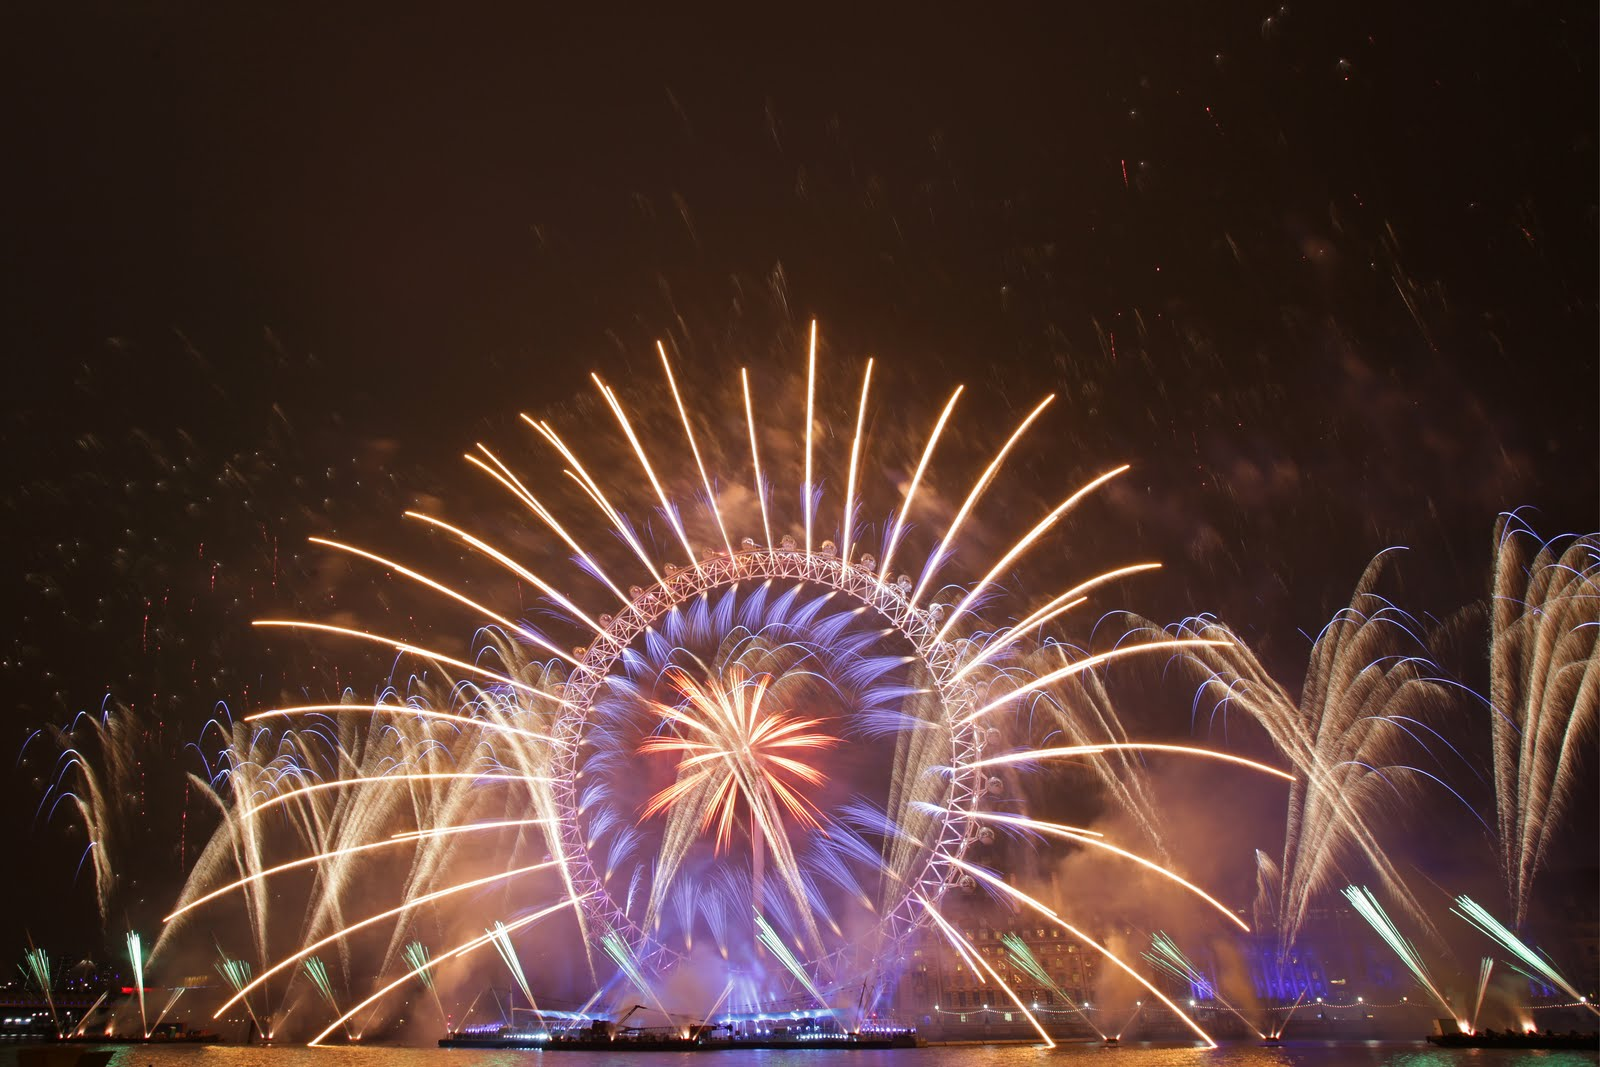 London Eye with fireworks